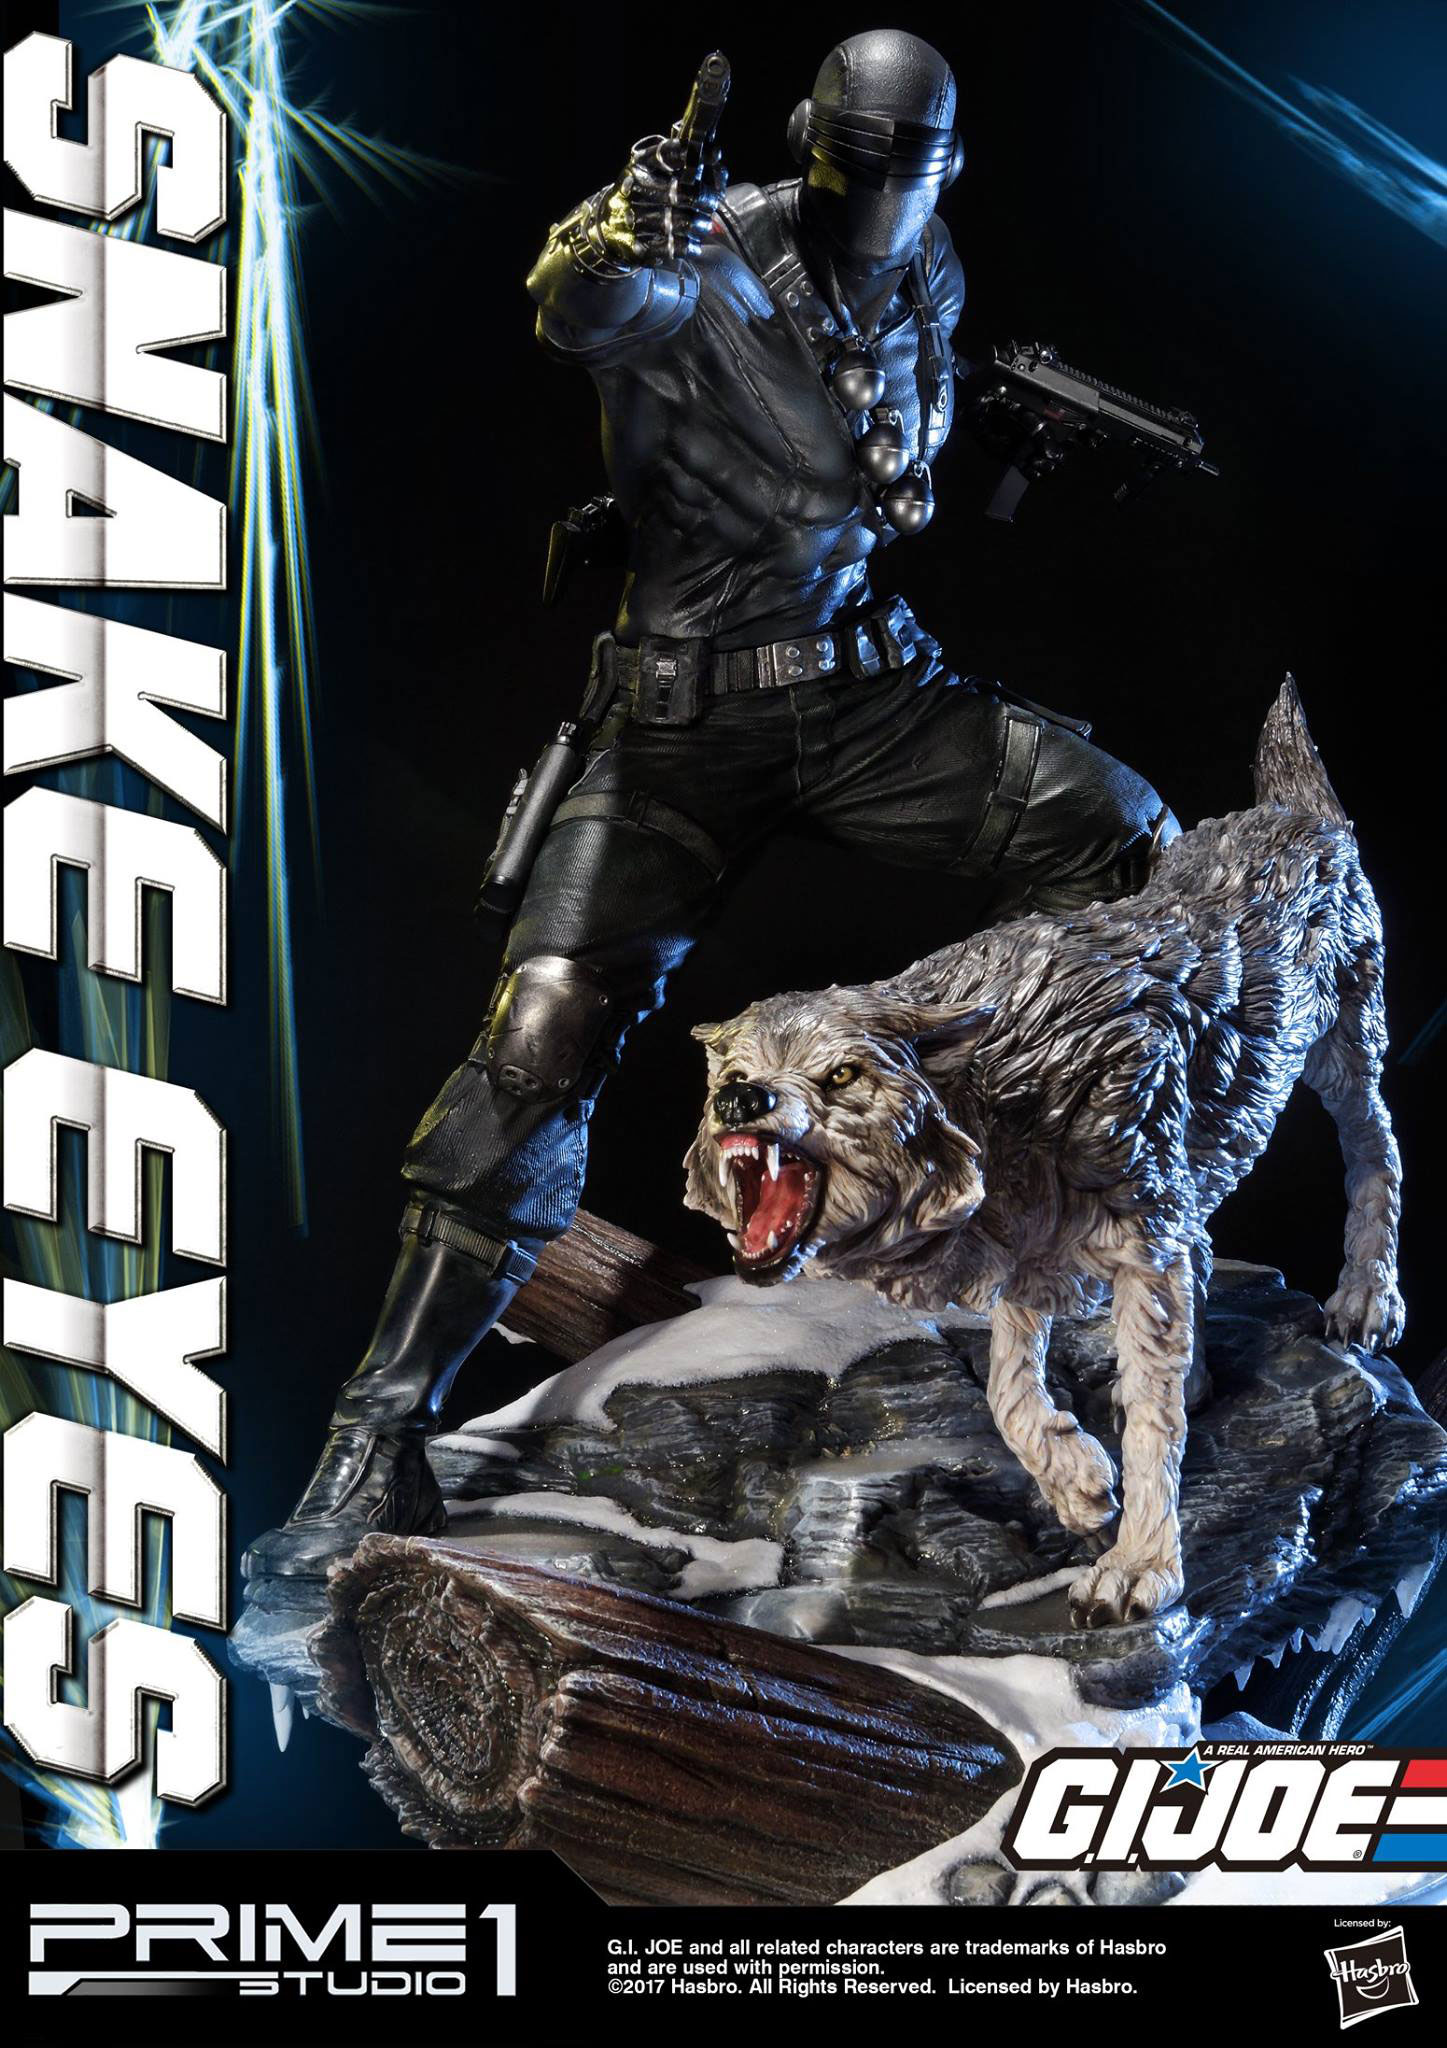 prime-1-studio-snake-eyes-statue-timber-updated-new-photos-4